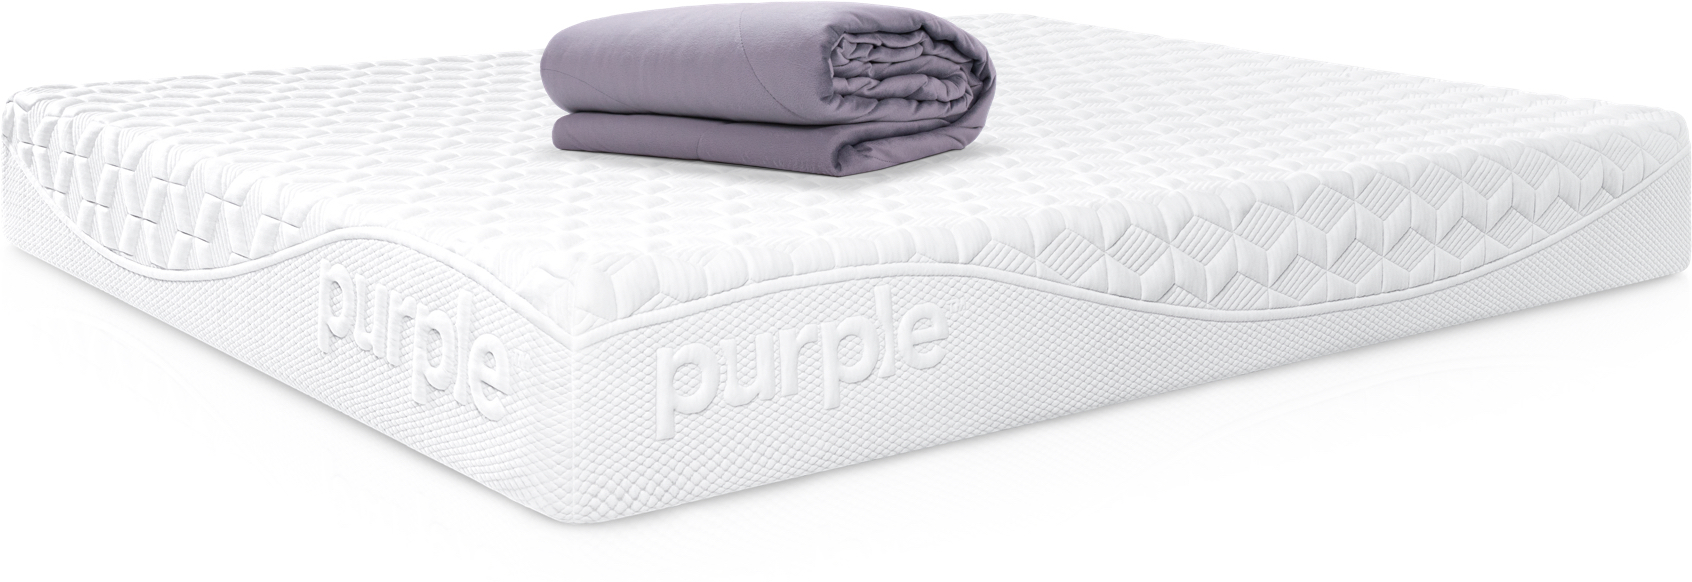 Mattress with gray, folded Purple blanket on top